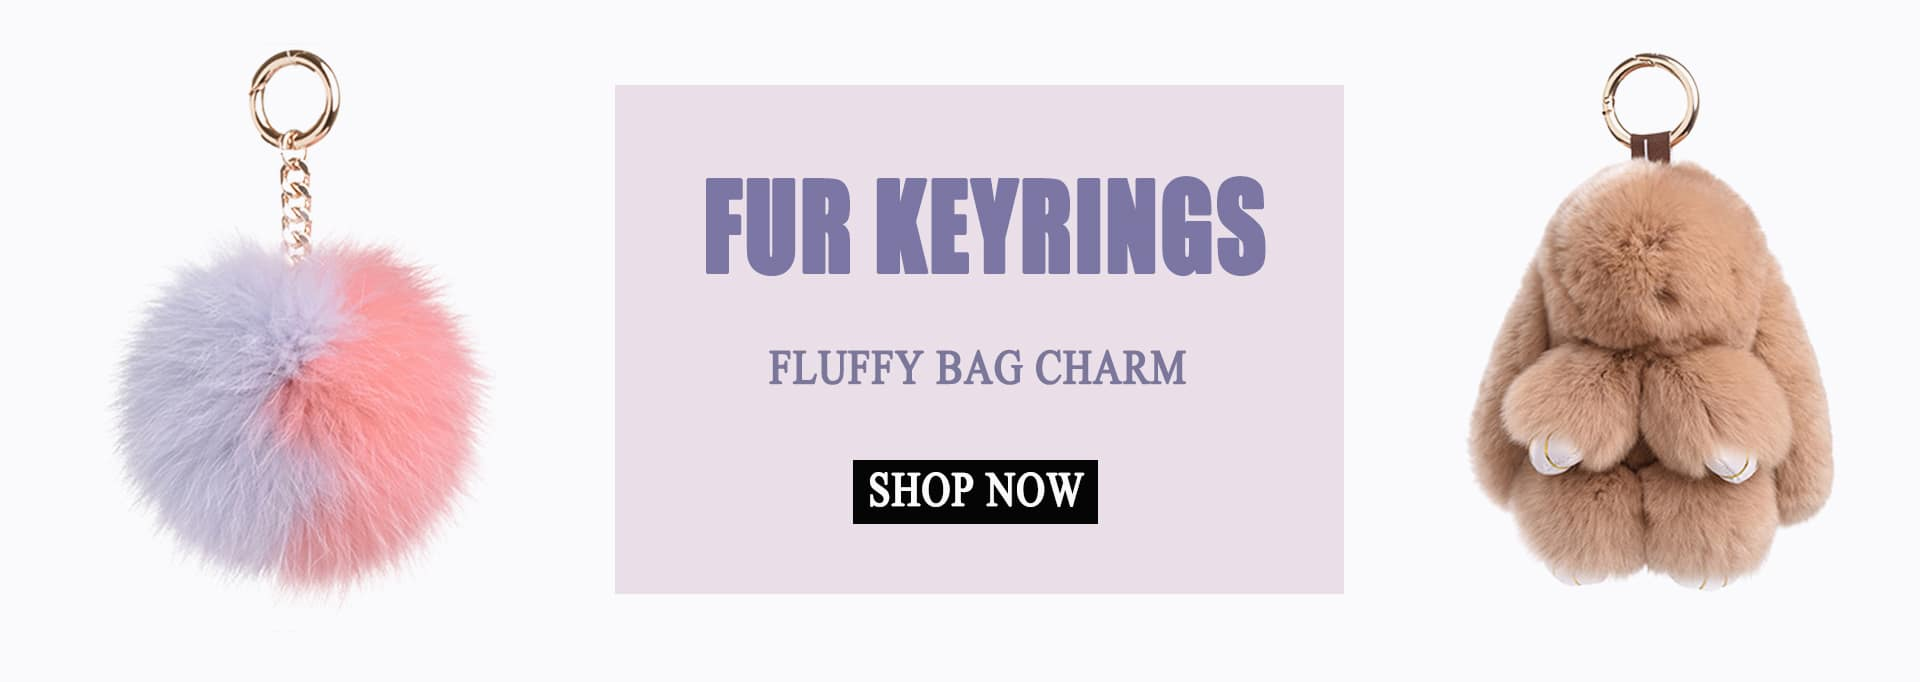 fur keyrings